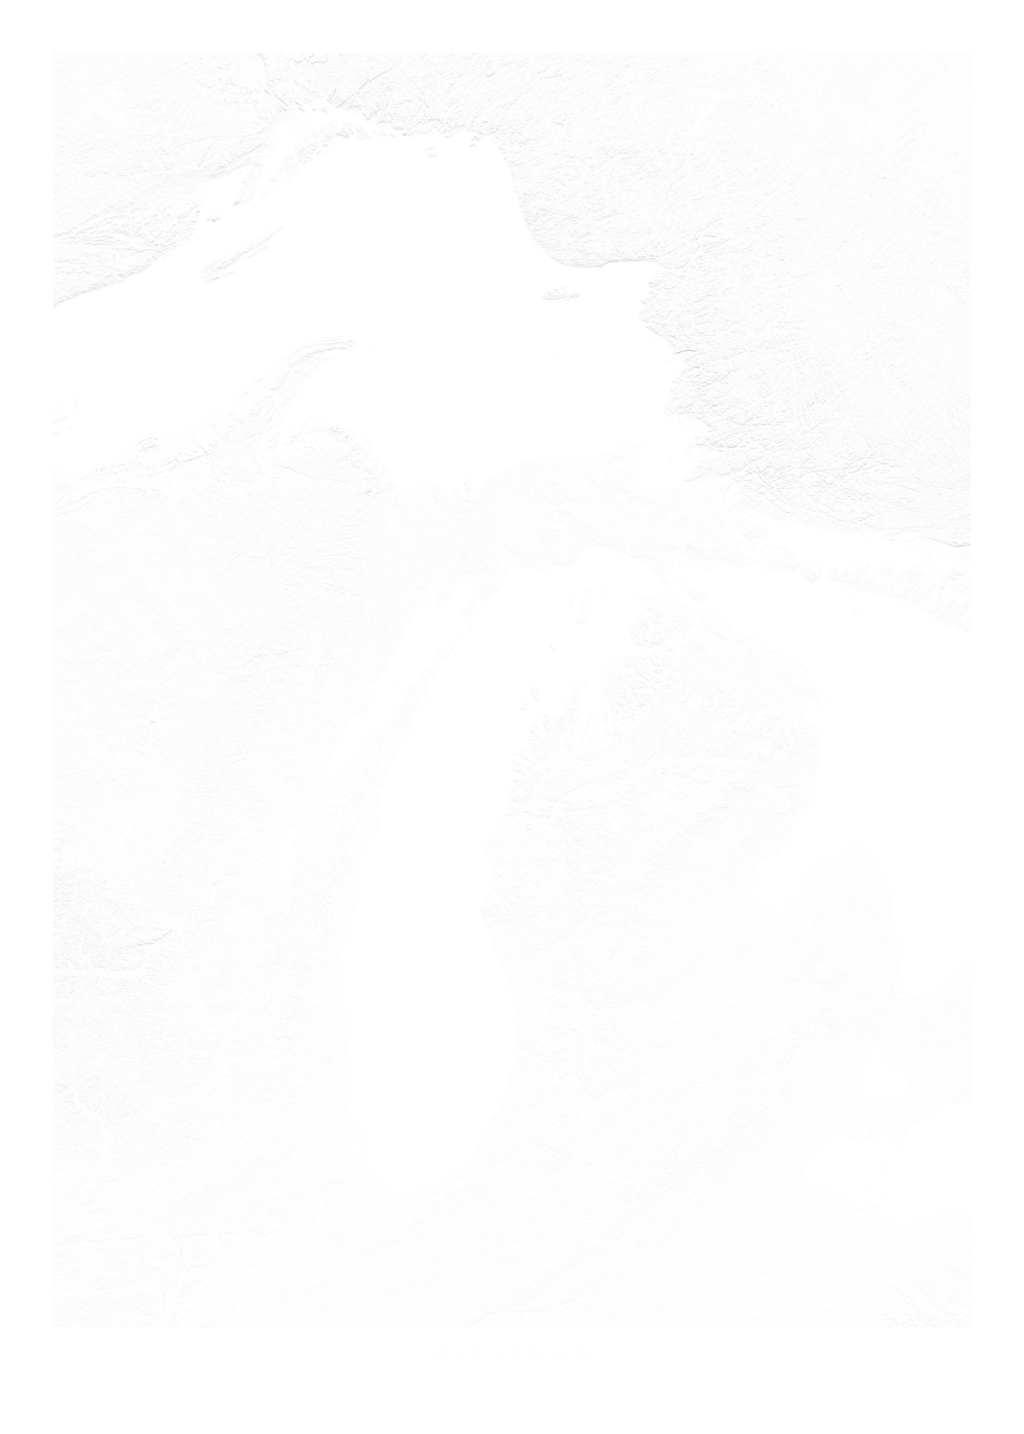 Michigan wall map